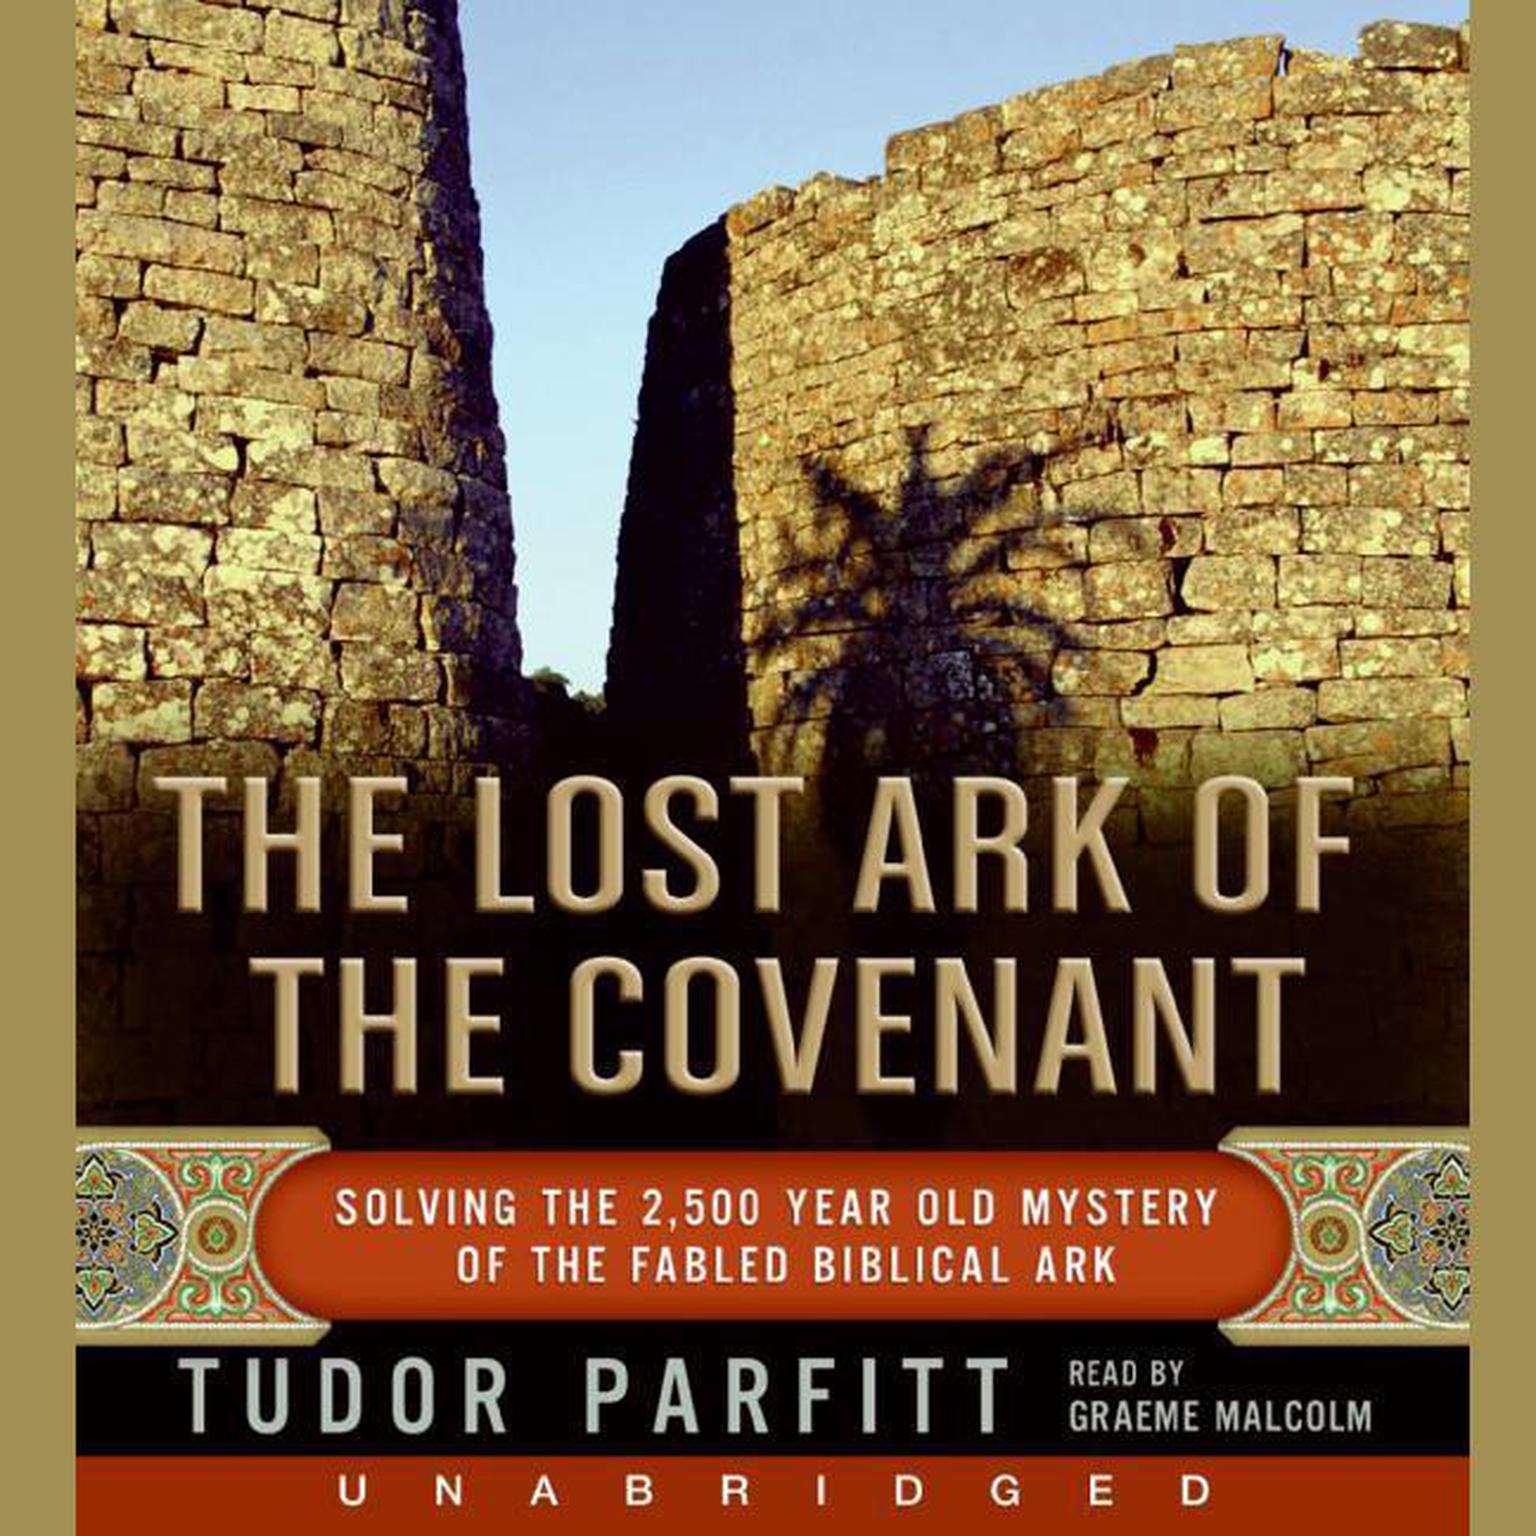 Printable The Lost Ark of The Covenant: Solving the 2,500 Year Old Mystery of the Biblical Ark Audiobook Cover Art